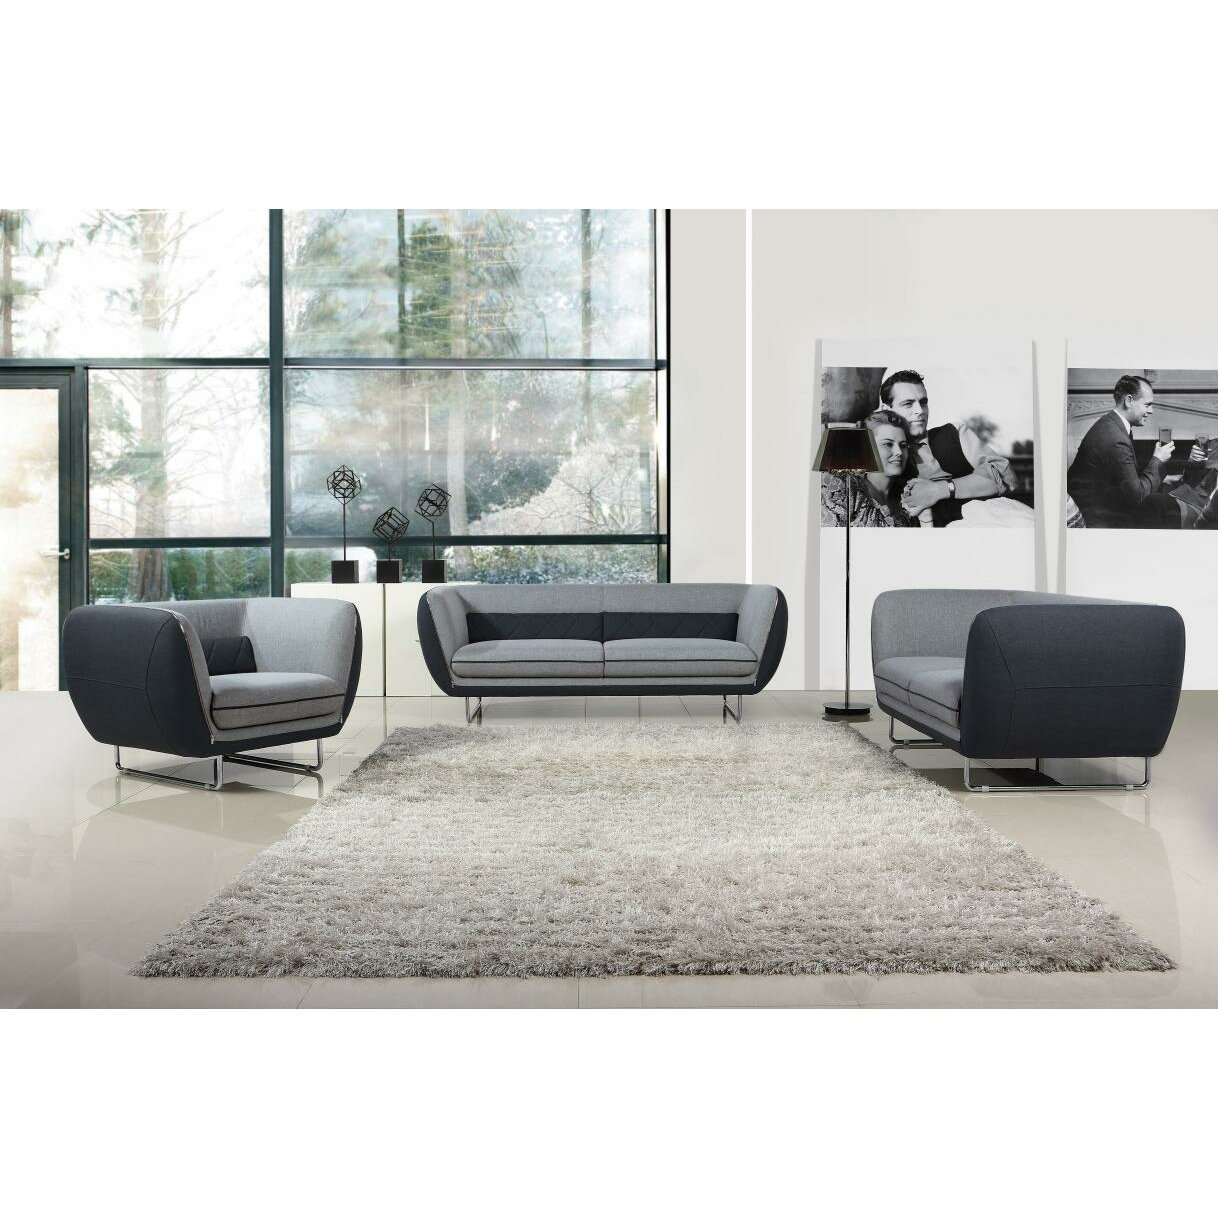 VIG Furniture Divani Casa Vietta Modern Living Room Set & Reviews